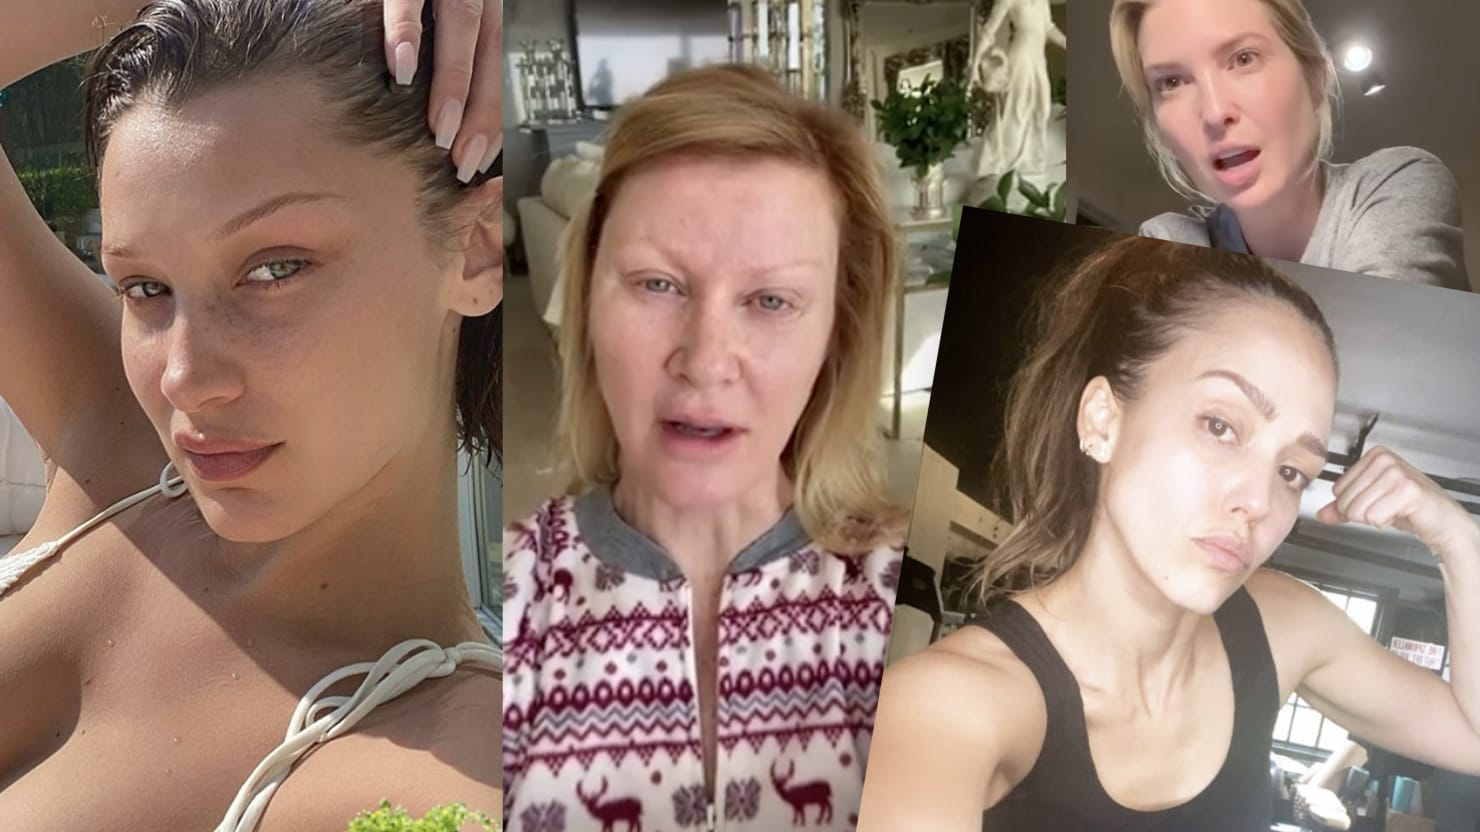 Makeup-Free Celebrities Want to Prove They're Just Like Us. They're Not.